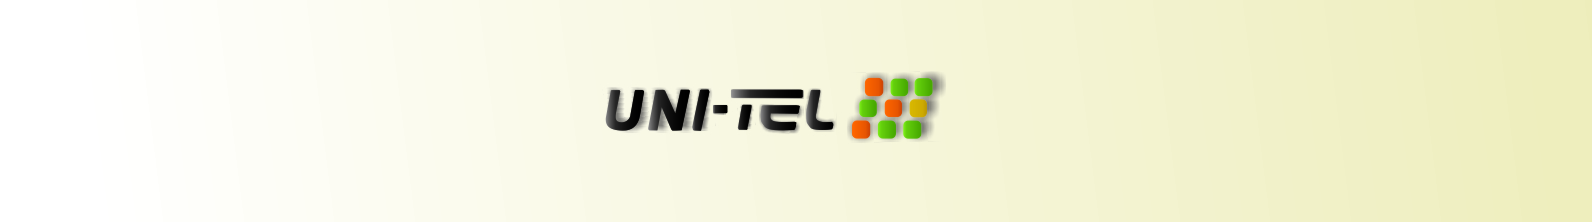 UNI-TEL Website Banner